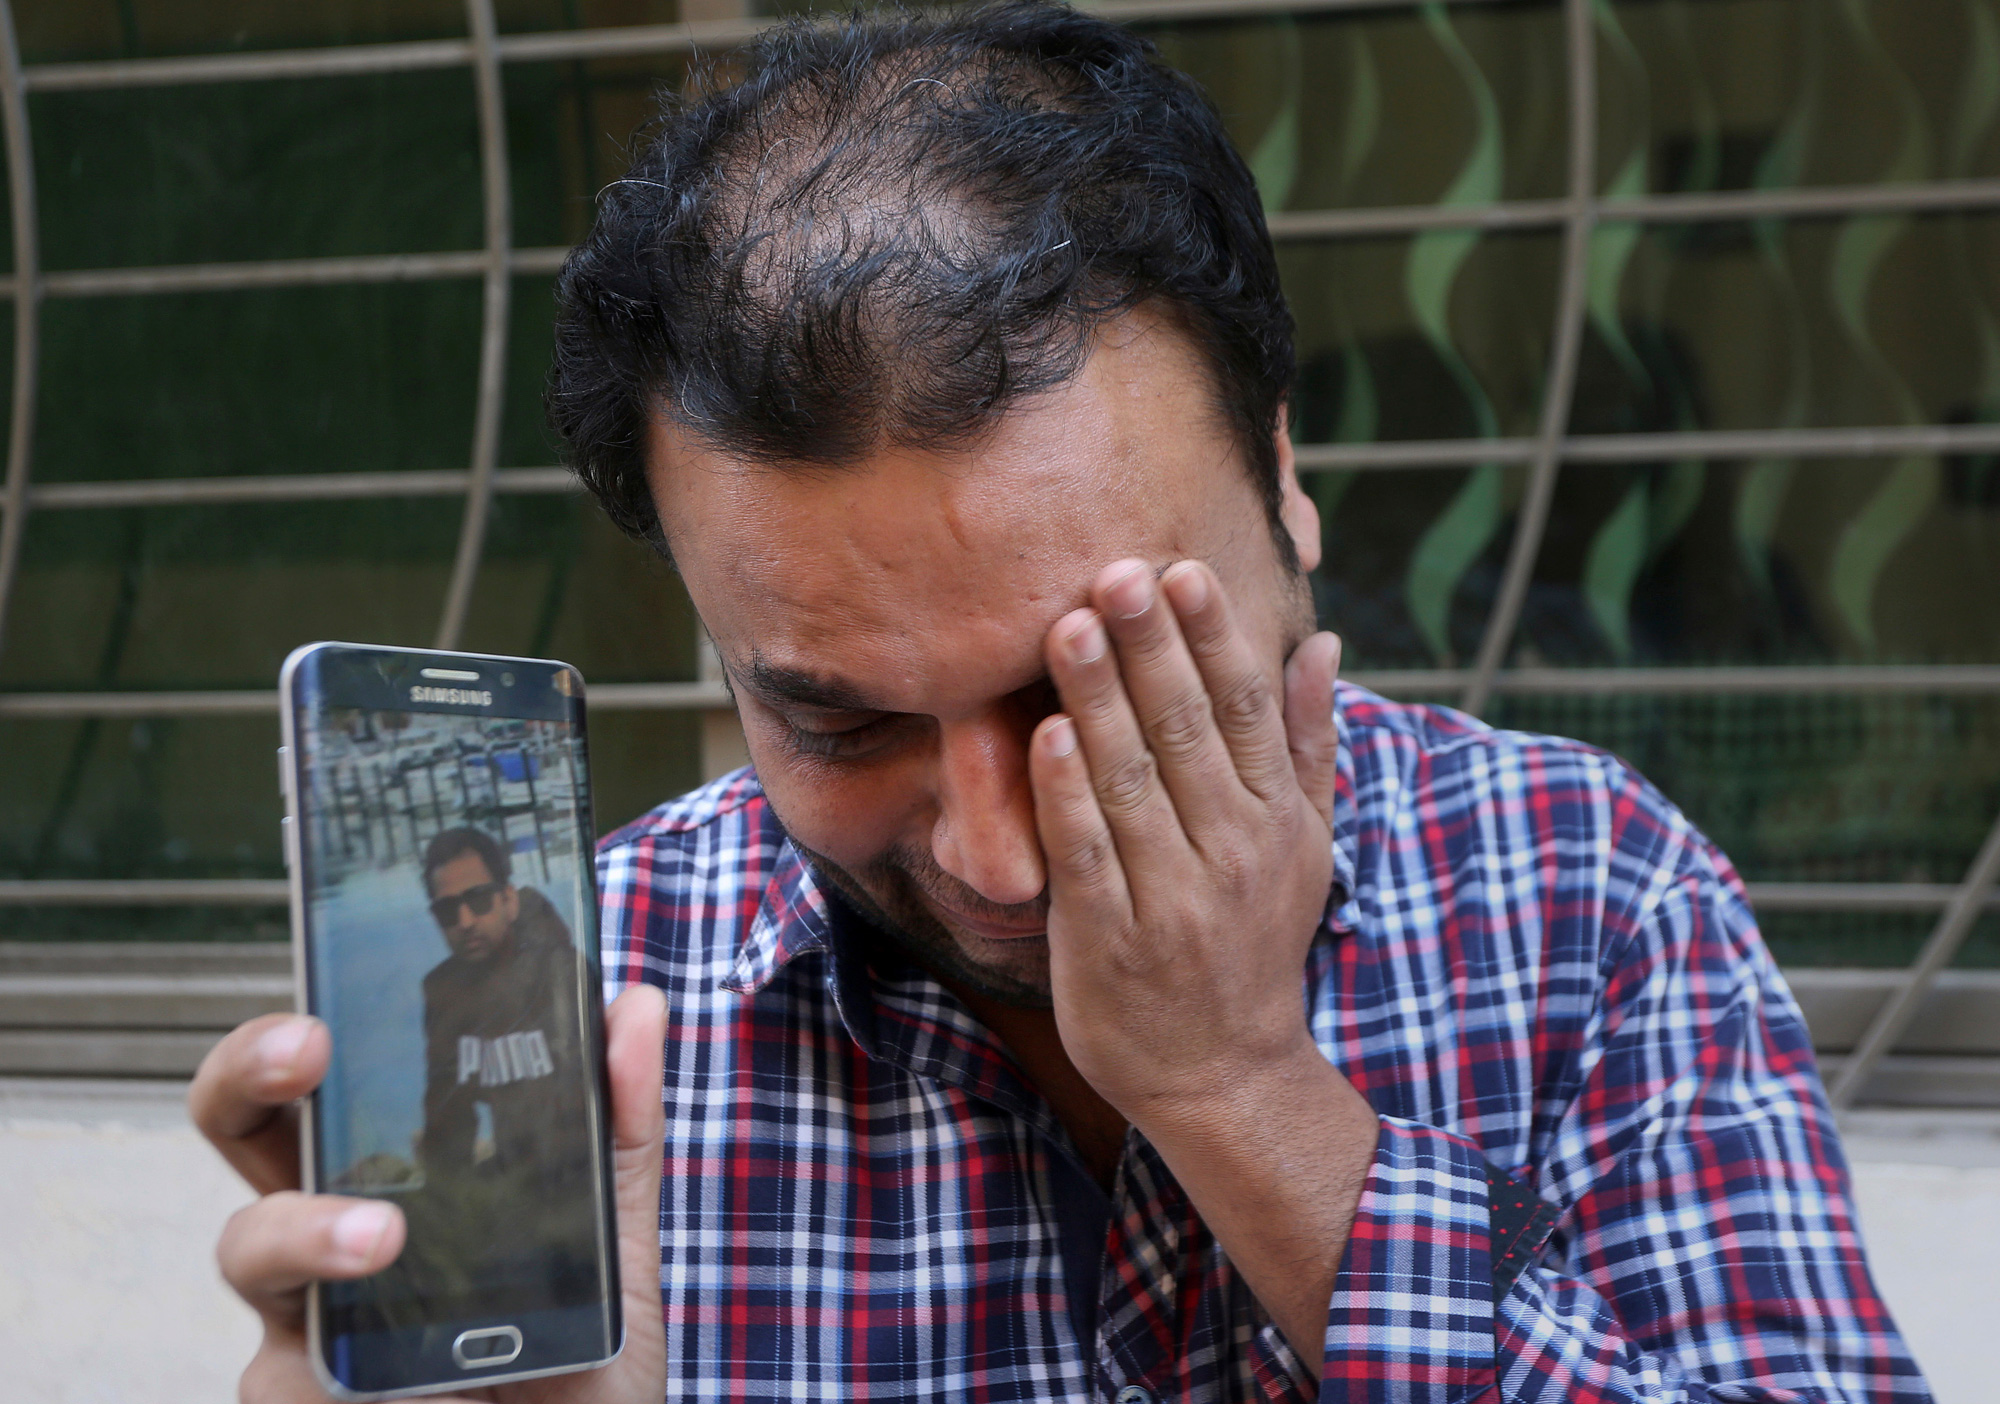 A relative weeps while holding up a picture of Sohail Shahid, a Pakistani citizen who was killed in Christchurch mosque shootings, on his cell phone outside his home in Lahore, Pakistan, on Sunday, March 17, 2019.